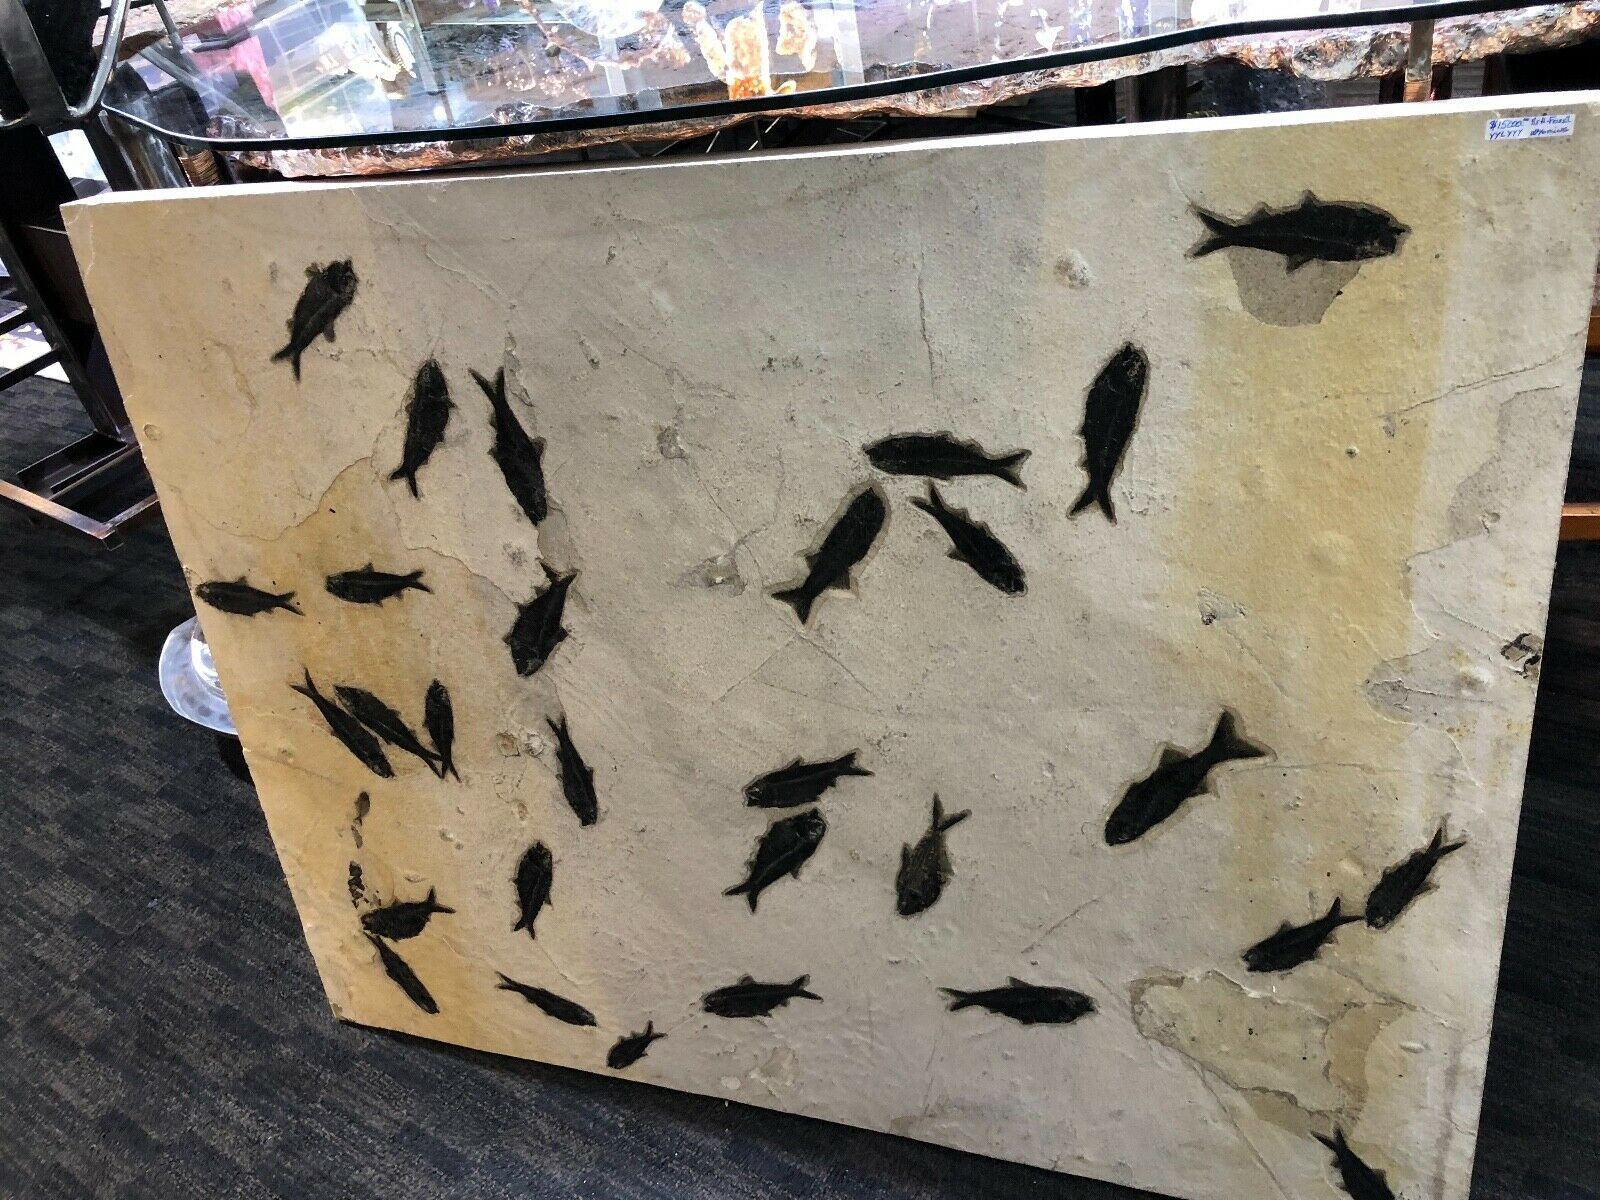 FISH FOSSIL WALL DISPLAY HOME DECOR DINOSAUR FOSSIL PIRATE GOLD COINS JURASSIC